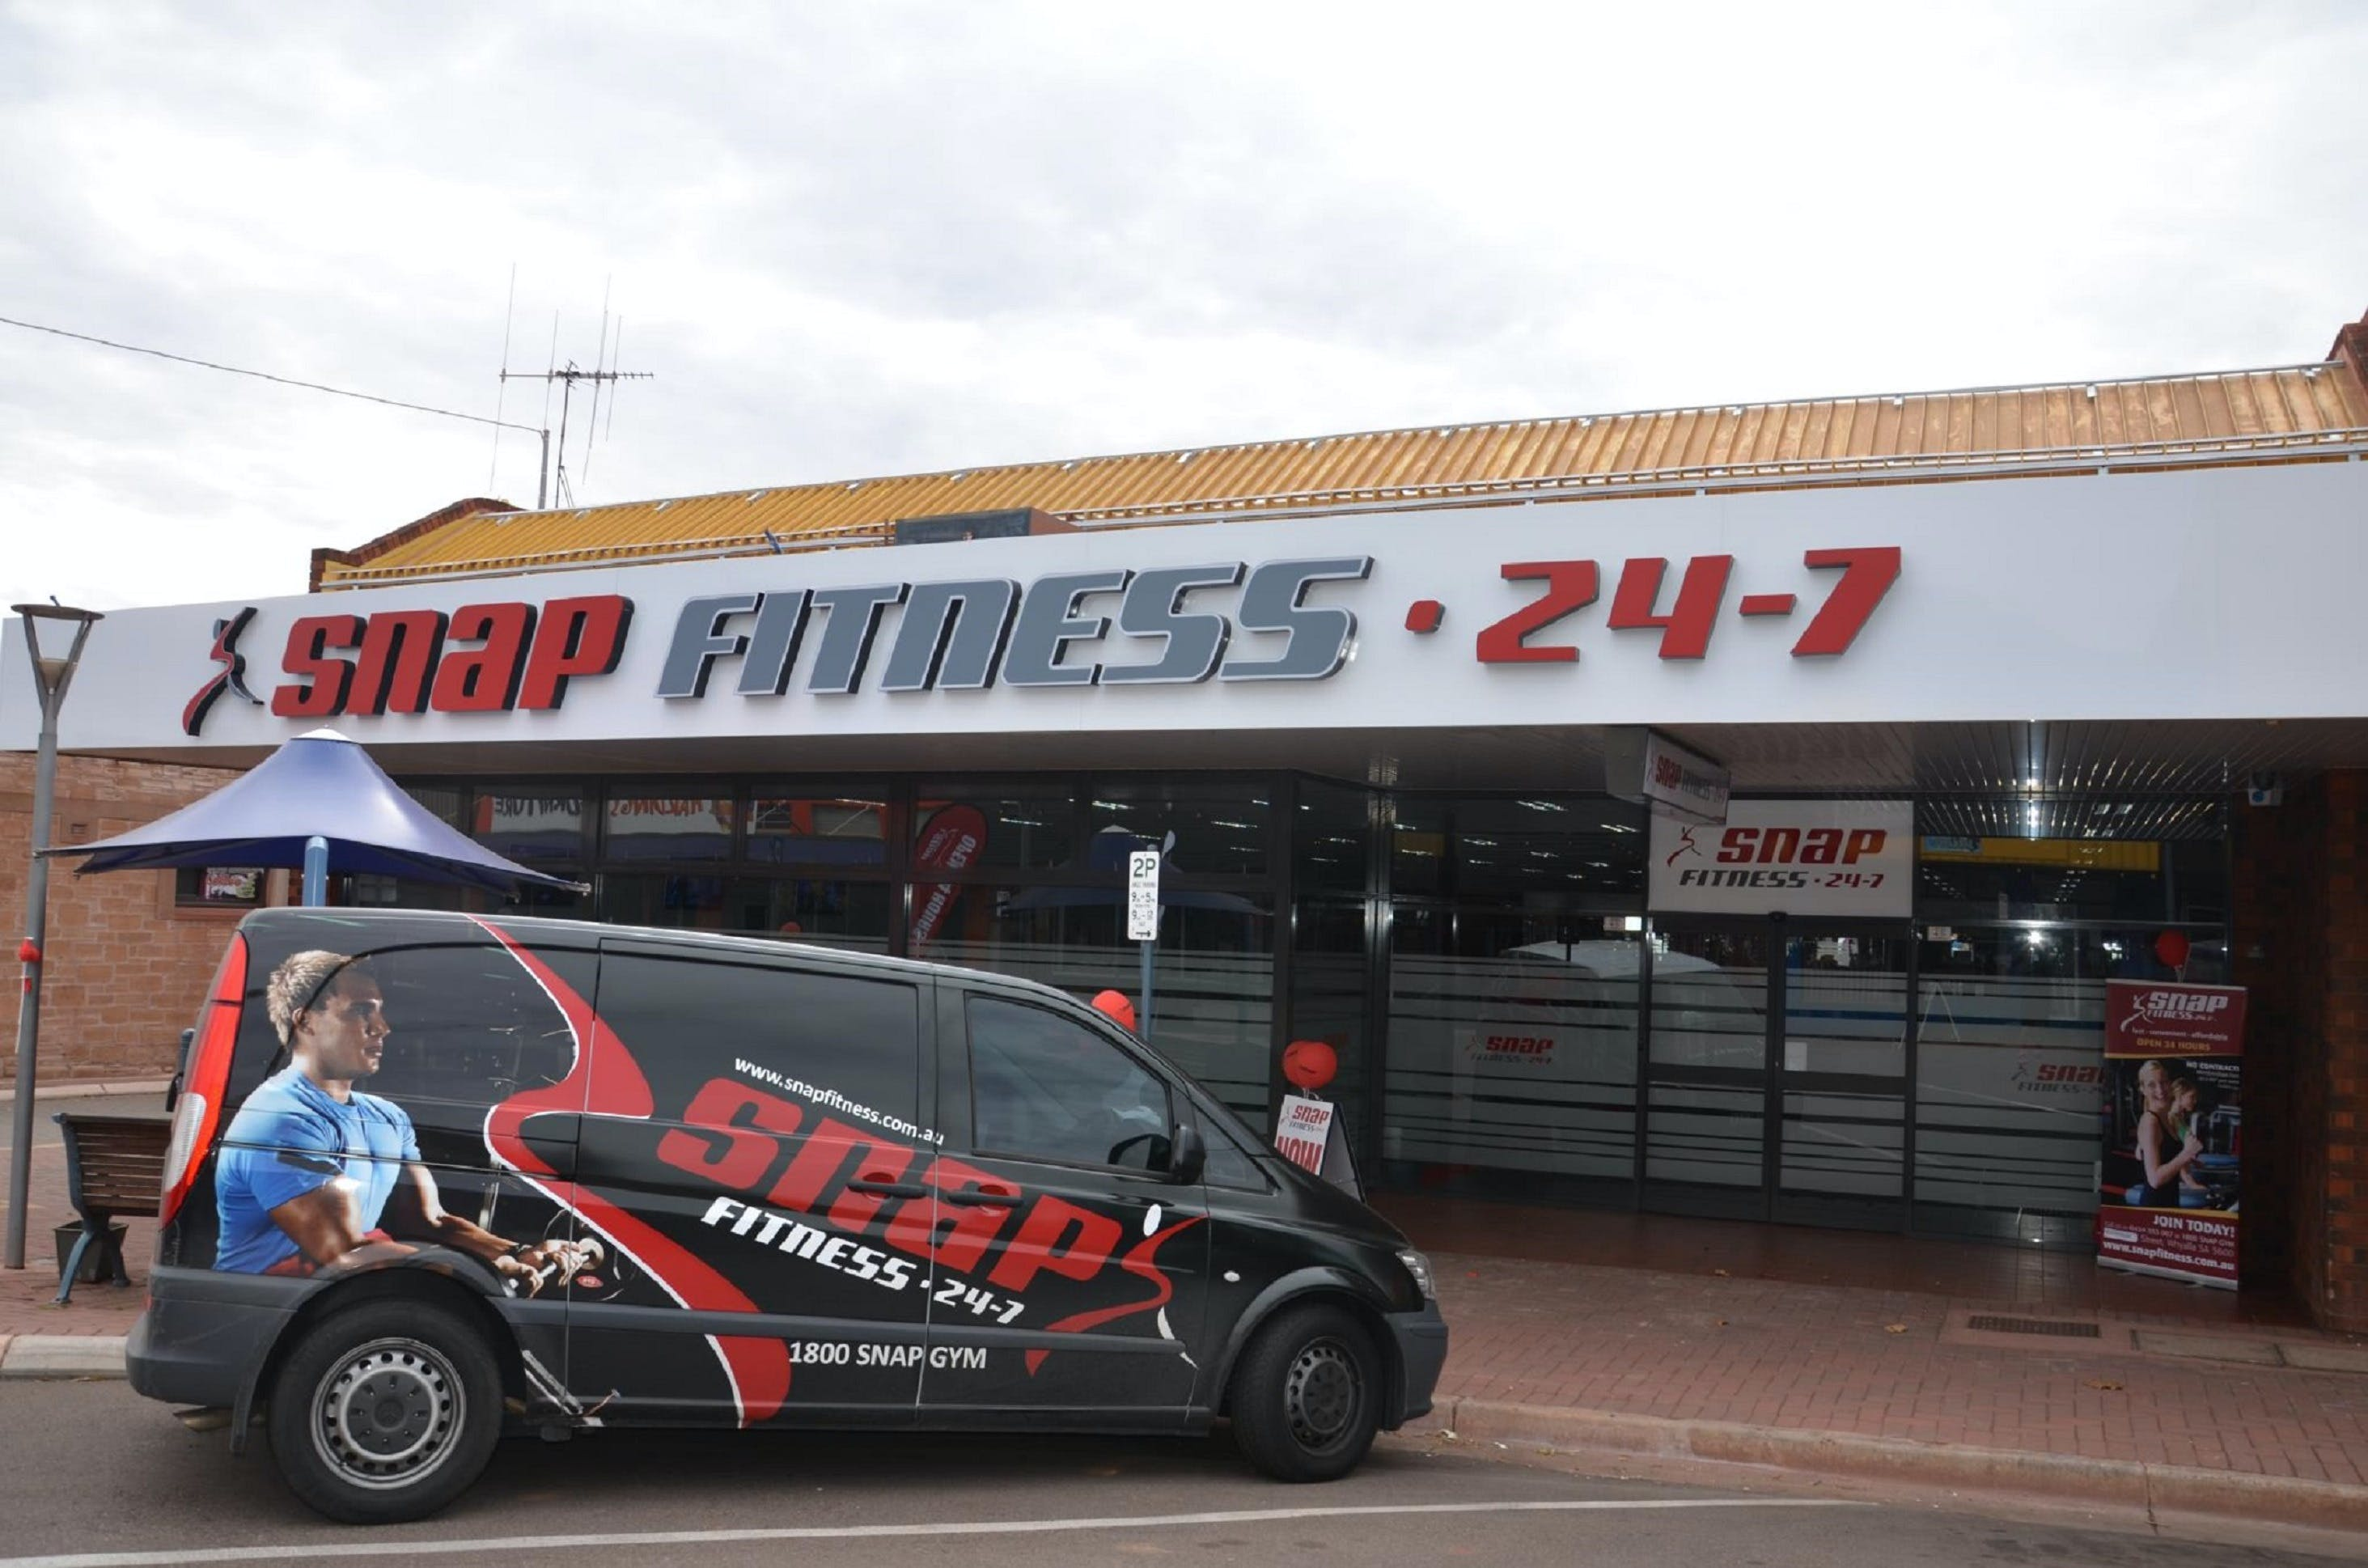 Snap Fitness Whyalla 24/7 gym - Accommodation Melbourne